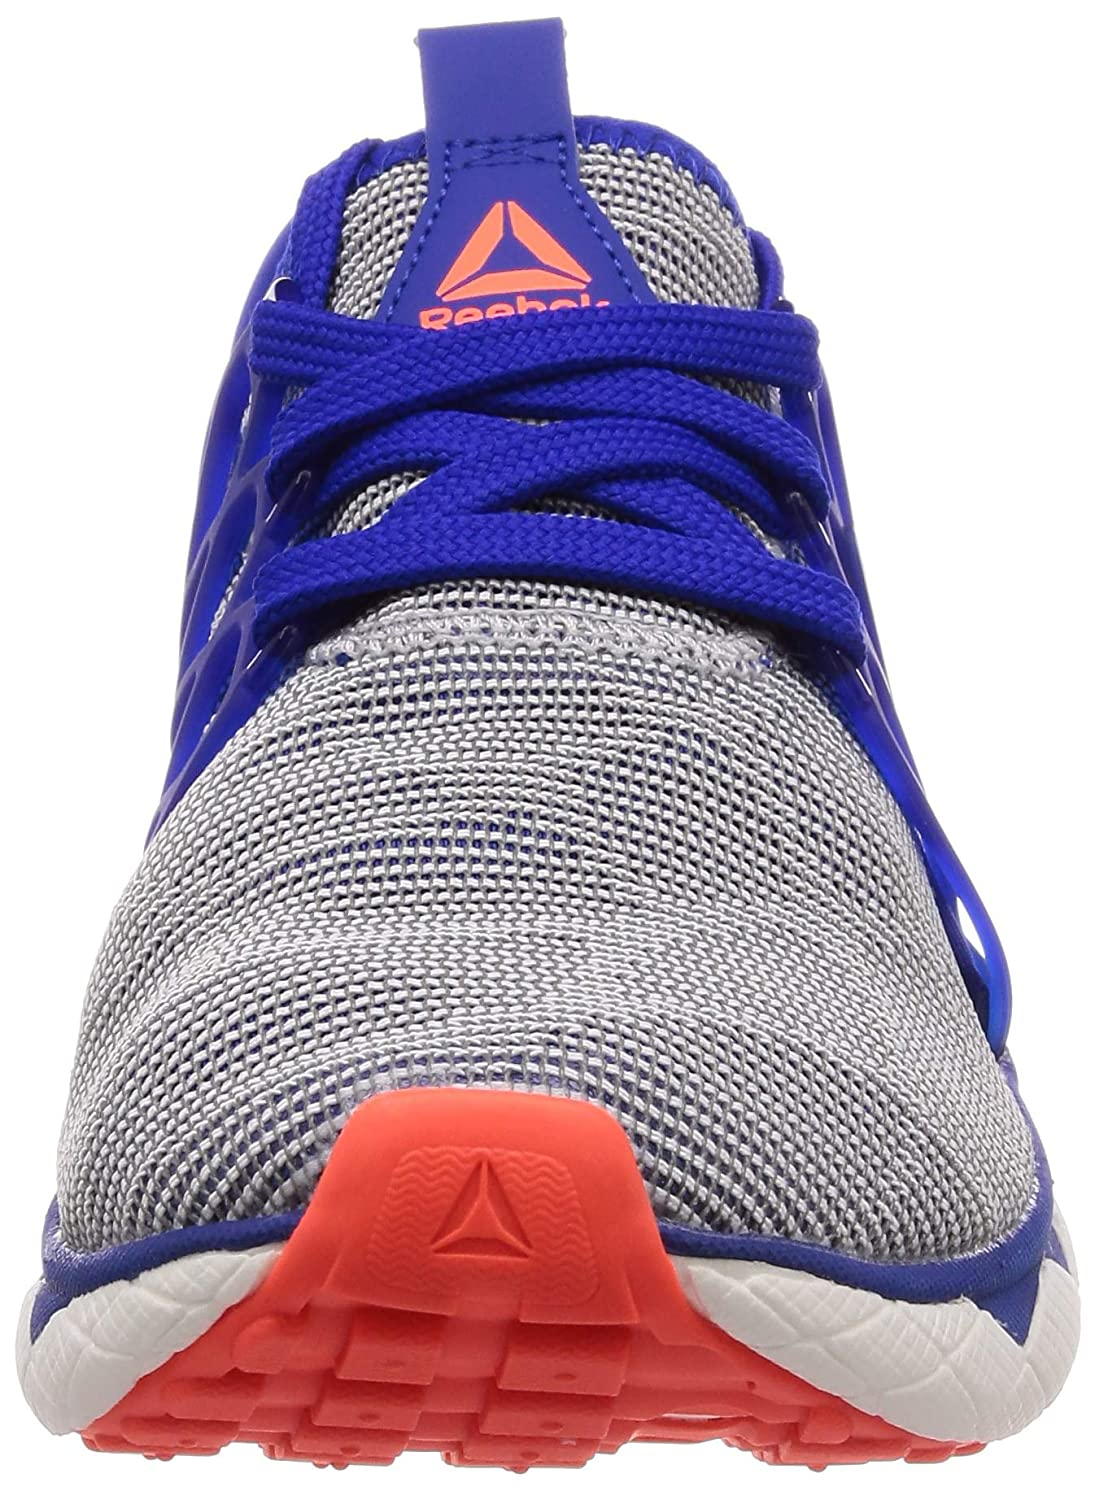 Reebok Herren Floatride Run Flexweave Flexweave Flexweave Cross-Trainer 03280d